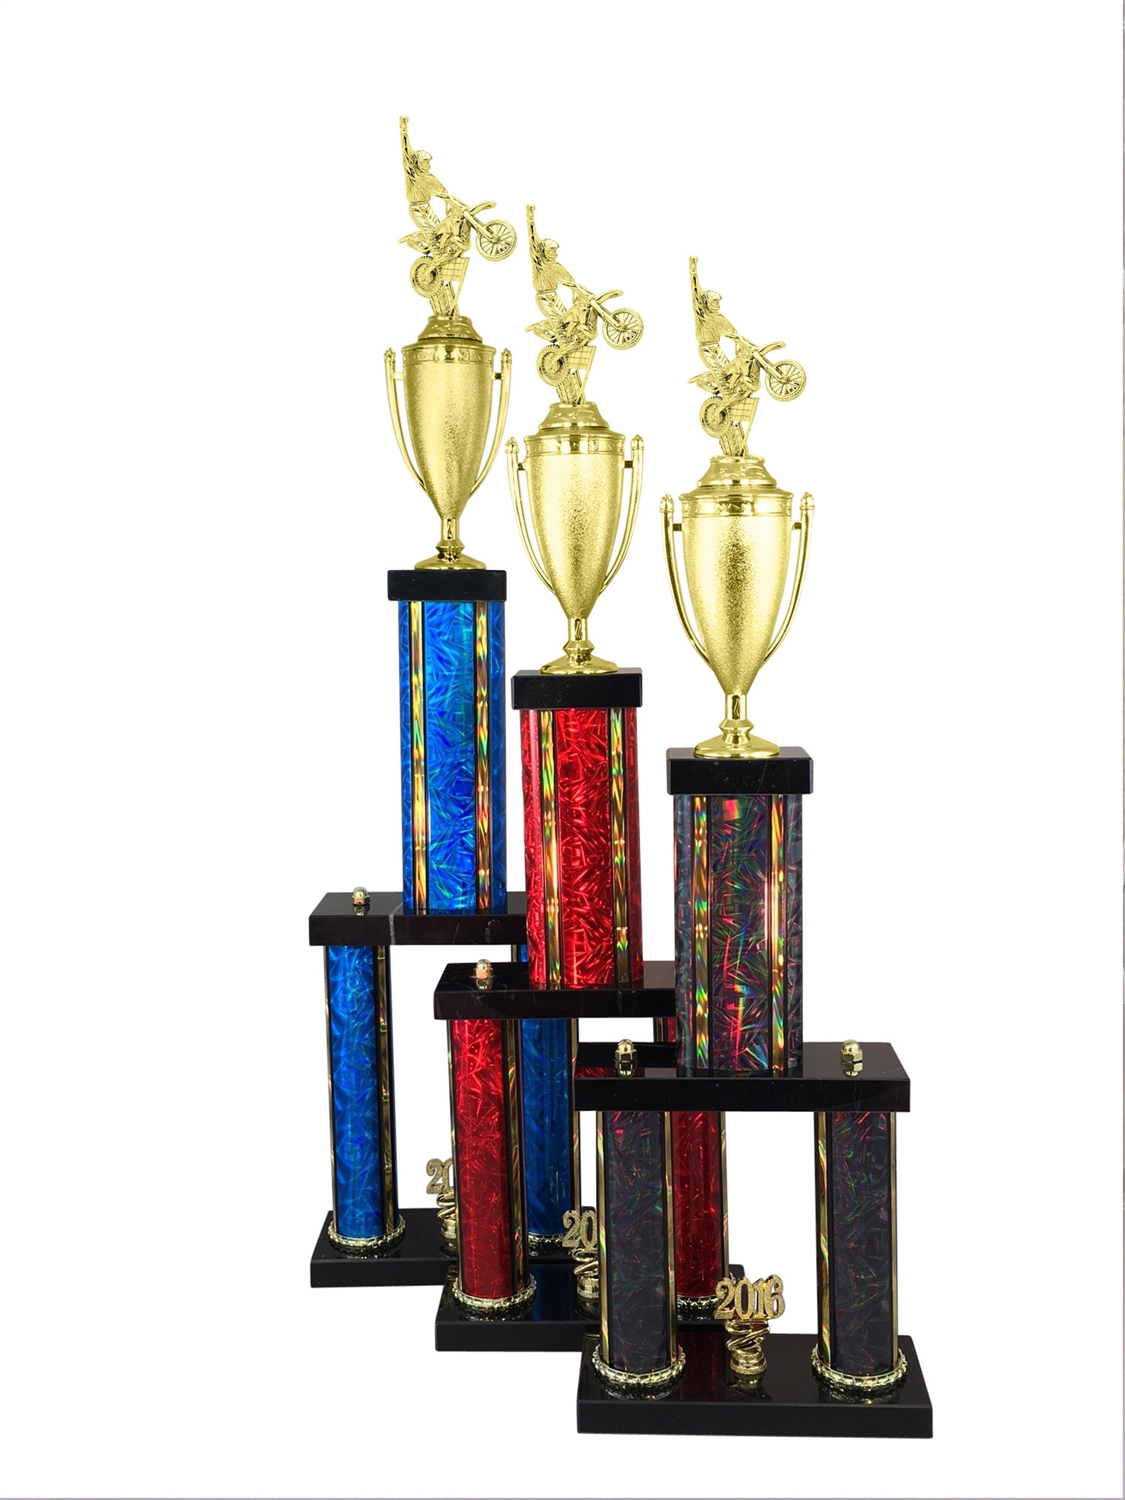 2 Column Motocross Trophy in 6 Sizes - in 11 Color & 6 Size Options